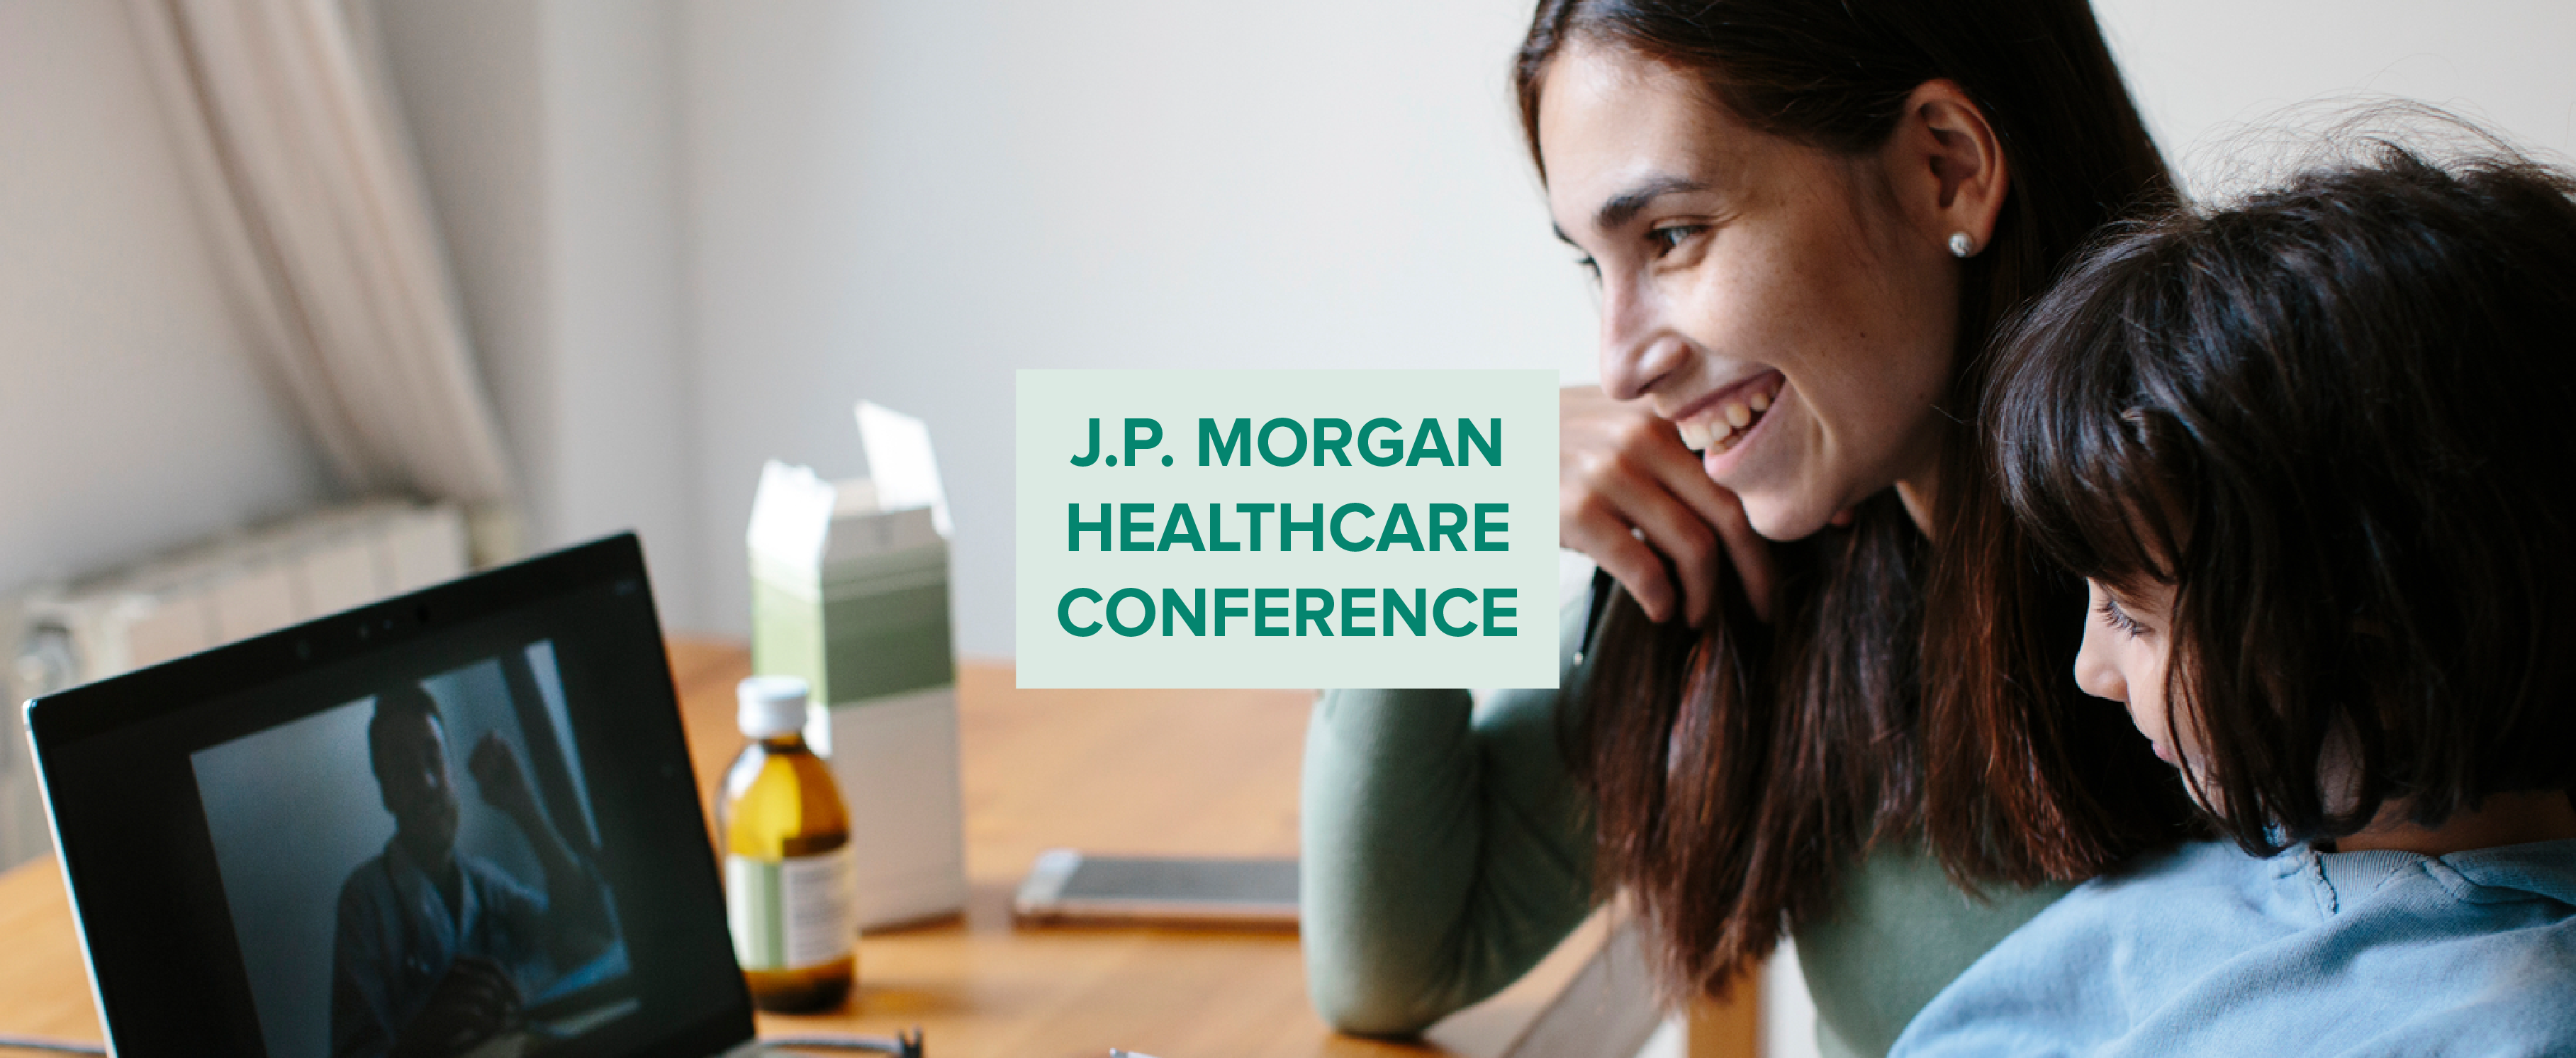 Women's and Family Health is Center Stage at the J.P. Morgan Healthcare Conference